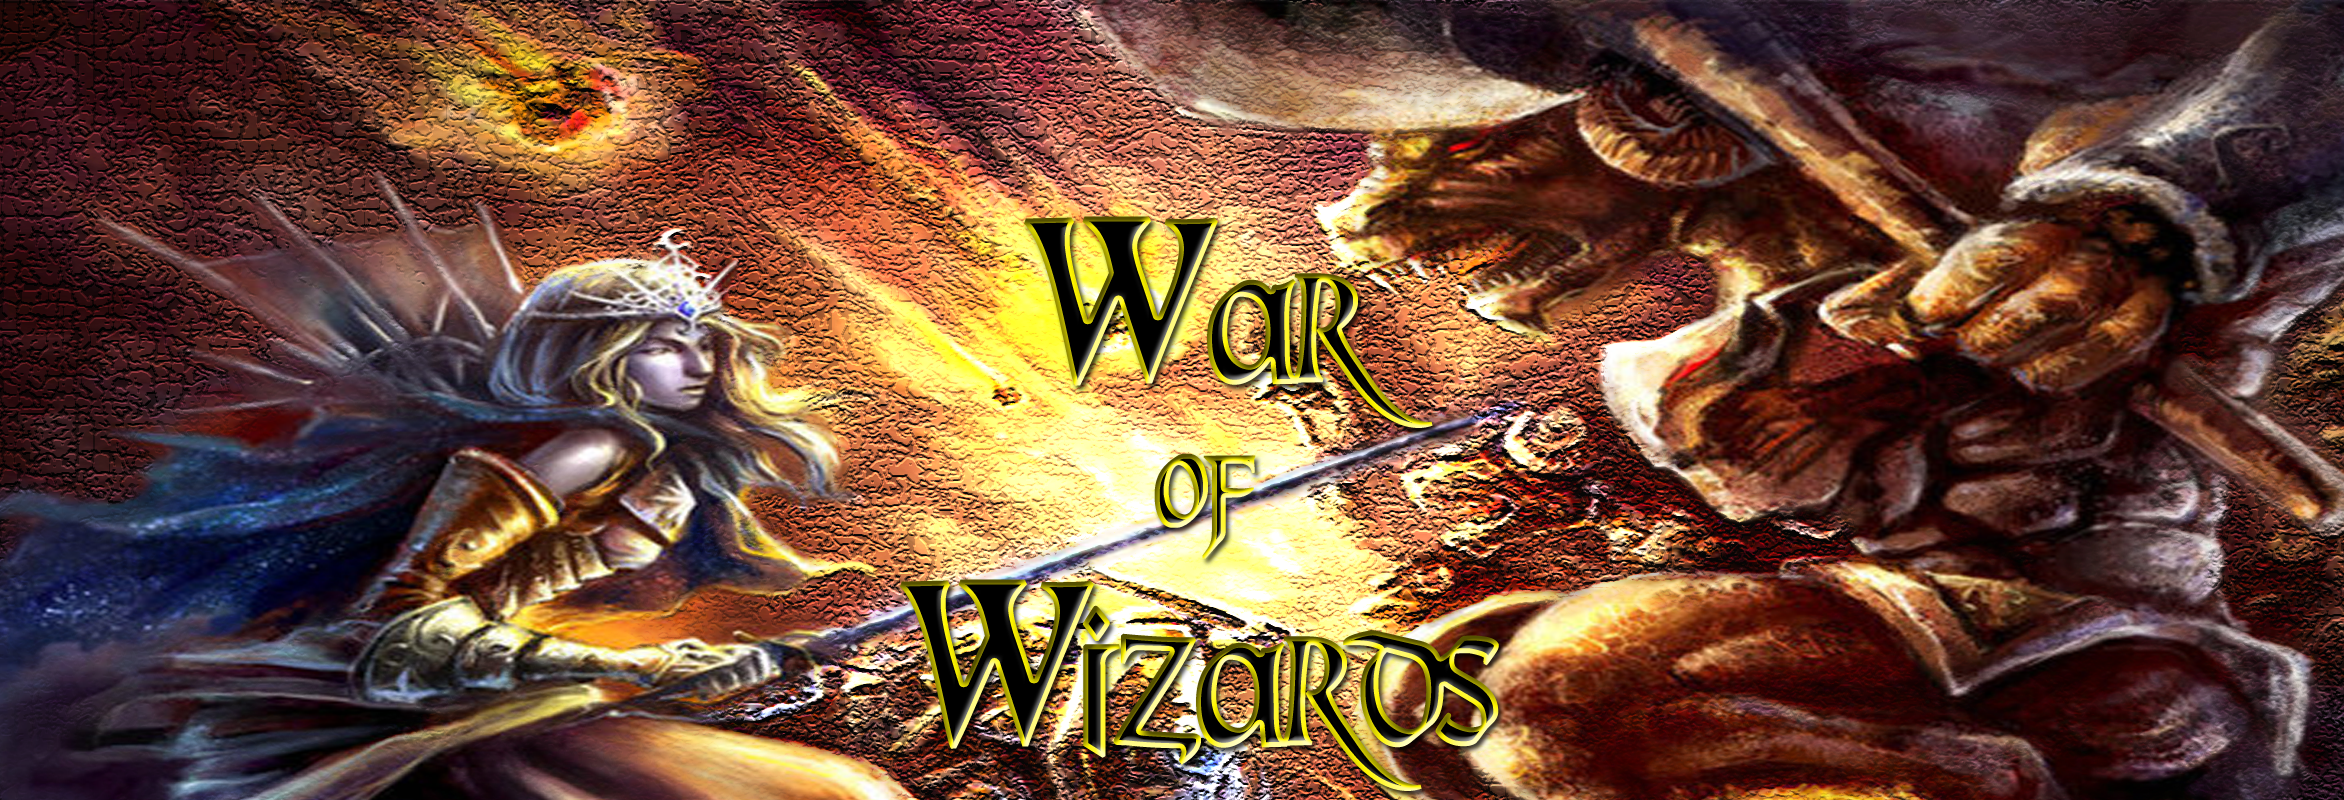 Banner Ad Design by Lara Puno - Entry No. 32 in the Banner Ad Design Contest Banner Ad Design - War of Wizards (fantasy game).